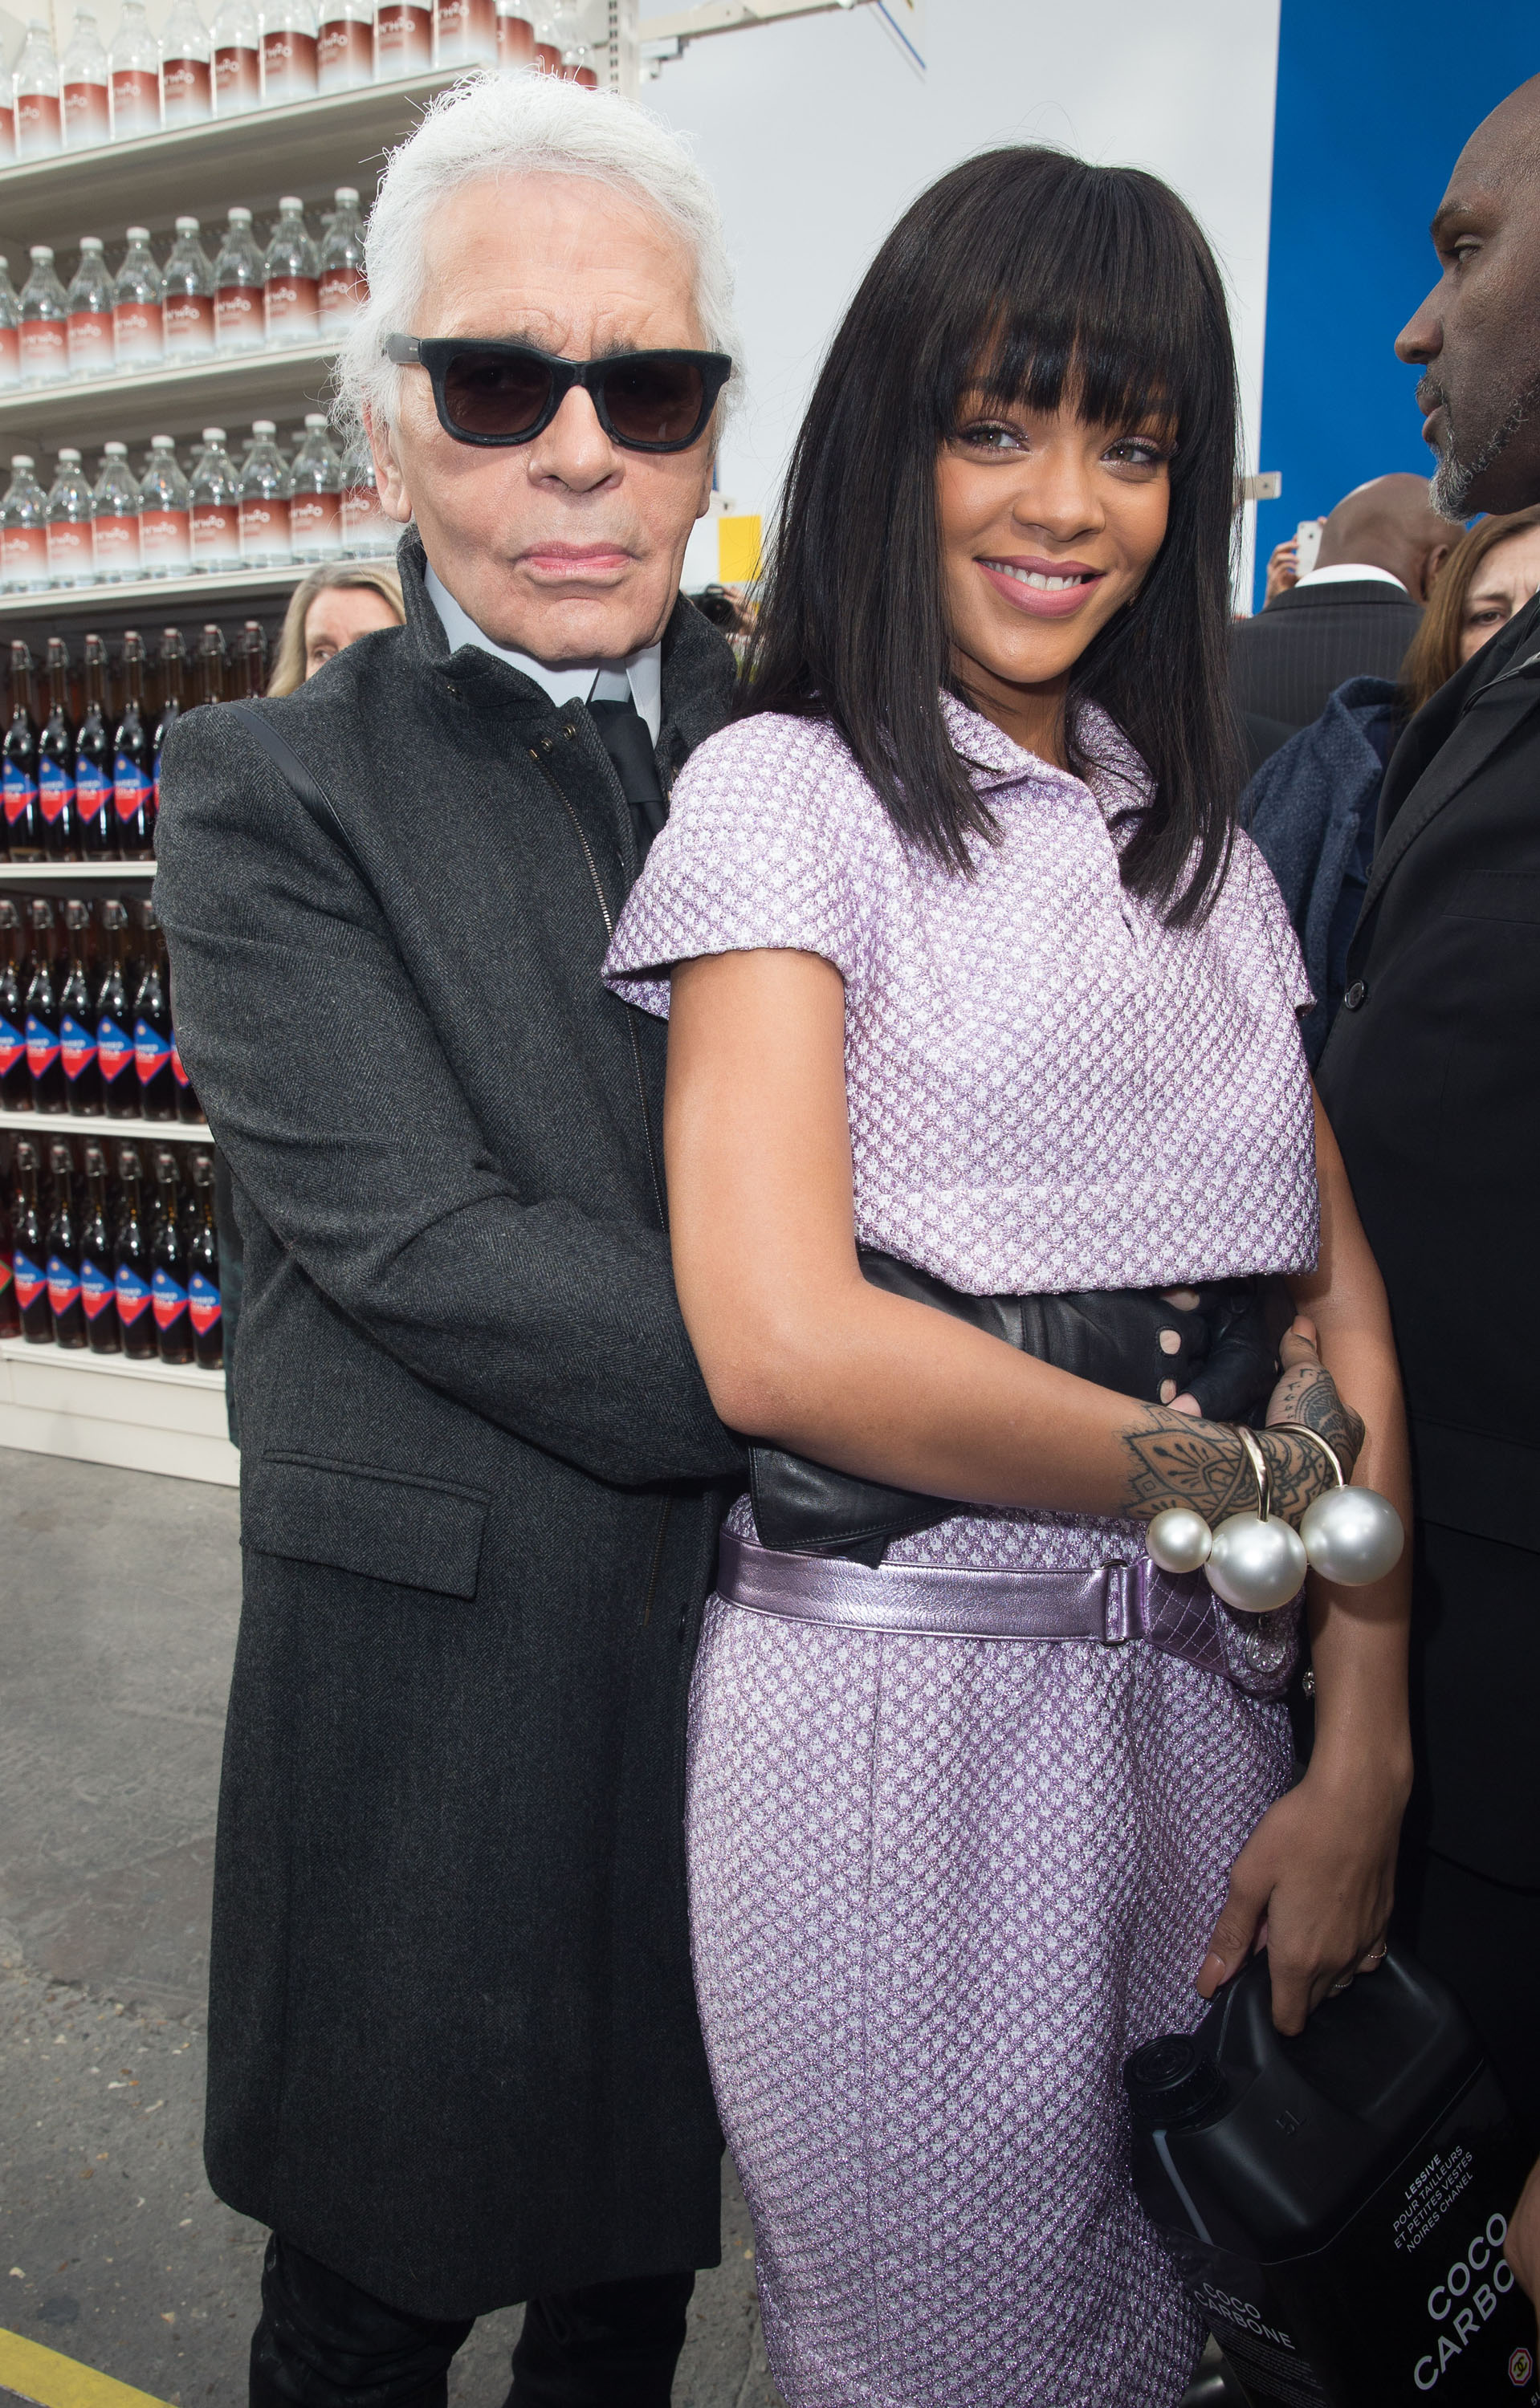 d548ff6c83 Karl Lagerfeld and Rihanna - Chanel Front Row - 7